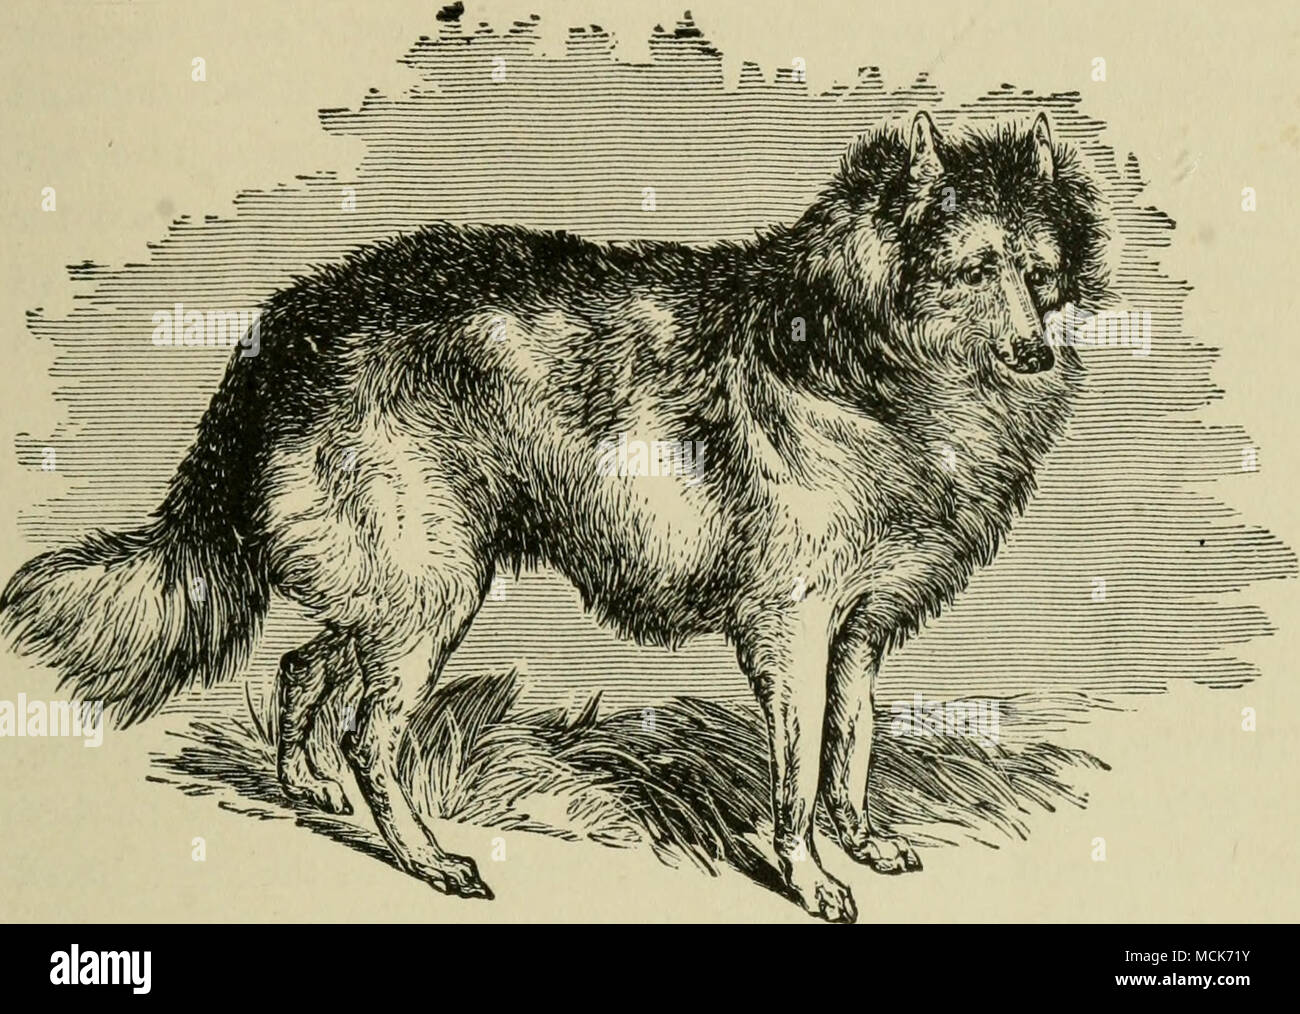 . Fig. 5,—THE HABK-INDIAN DOG. THE HARE-INDIAN DOG. The Hare-Indian dog inhabits the country watered by the Mac- kenzie River and the Great Bear Lake of America, where it is used to hunt the moose and reindeer by sight, aided occasionally by its powers of scent, wnich are by no means contemptible, but kept in abeyance by disuse. The feet are remarkable for spreading on the snow, so as to prevent them from sinking into it, and to enable the dog to bound lightly over a surface which the moose sinks into at every stride. The hight is about 25 inches, combined with great strength. The ears are bro - Stock Image